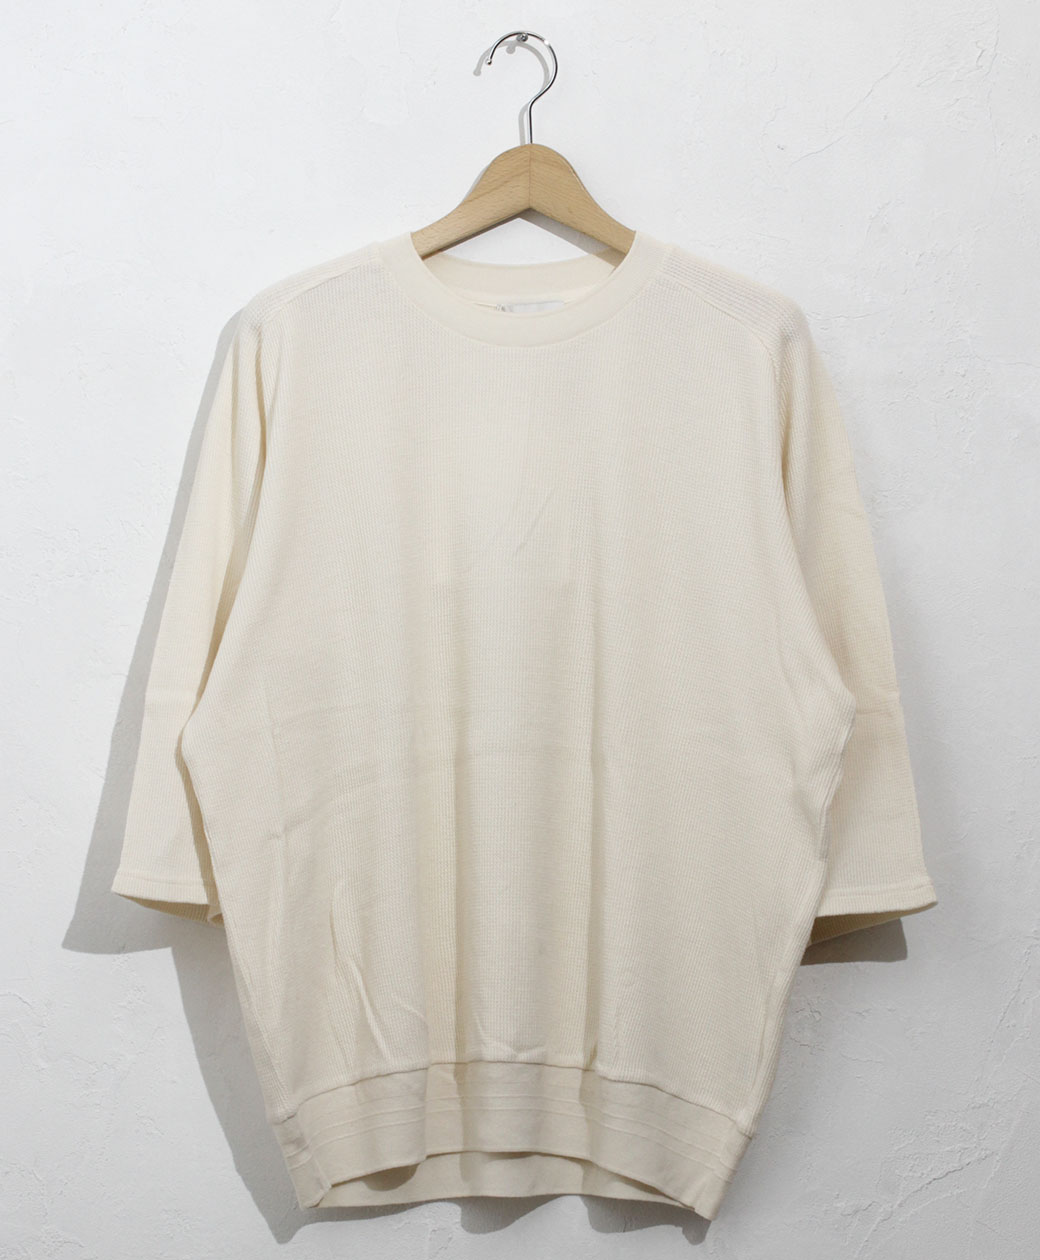 flistfia 3/4 Sleeve Sweater(Off White)